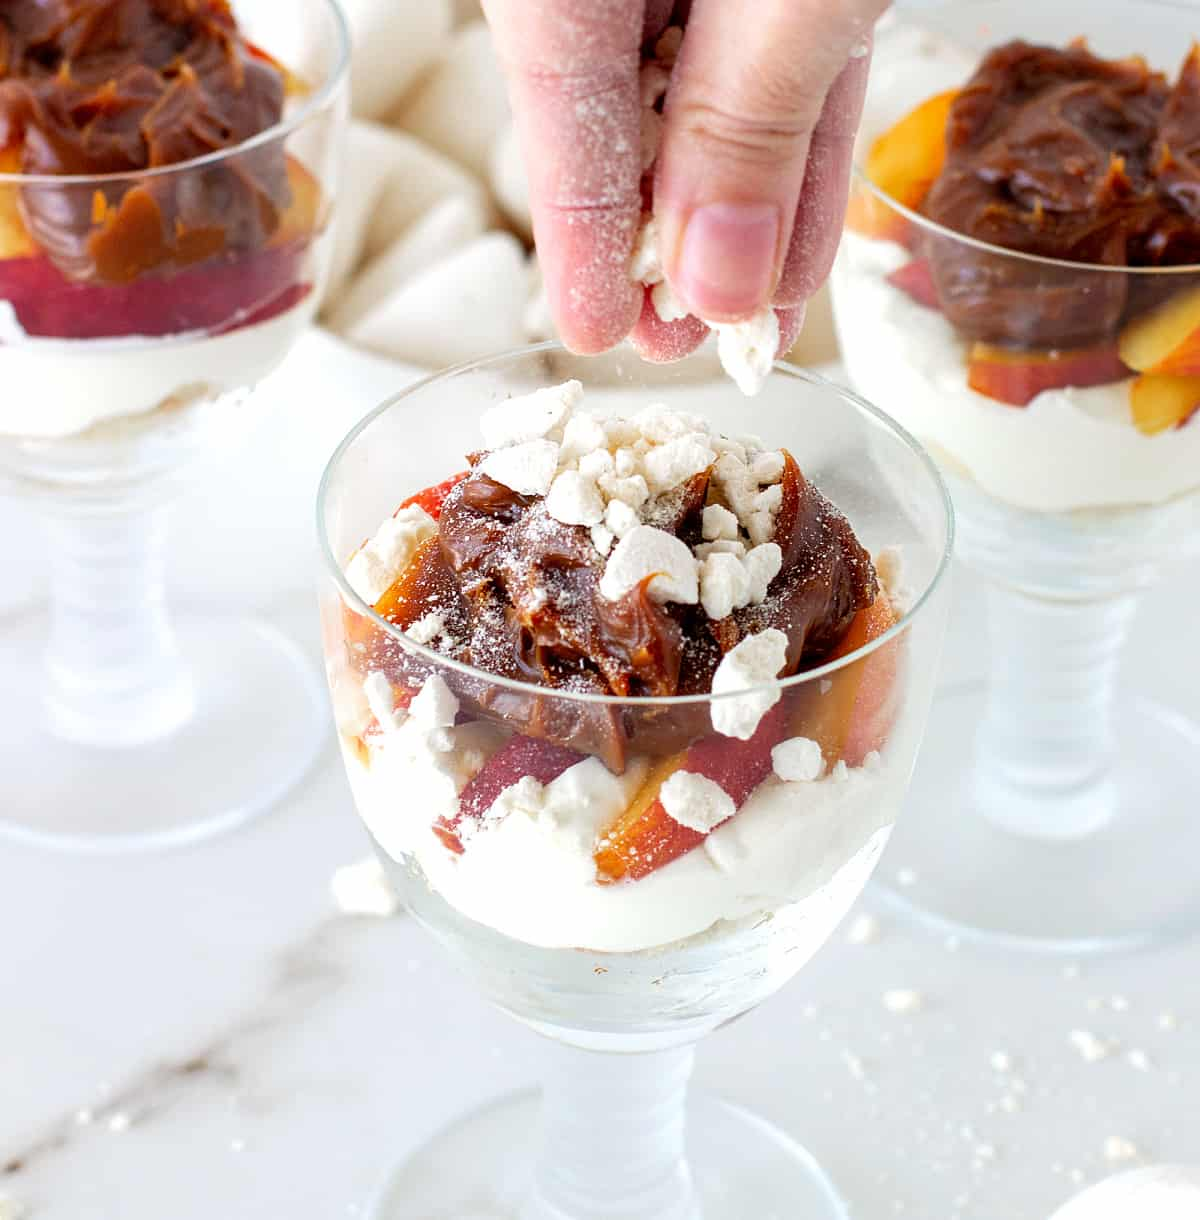 Crushed meringue added to glasses containing peach cream trifle on white marble table